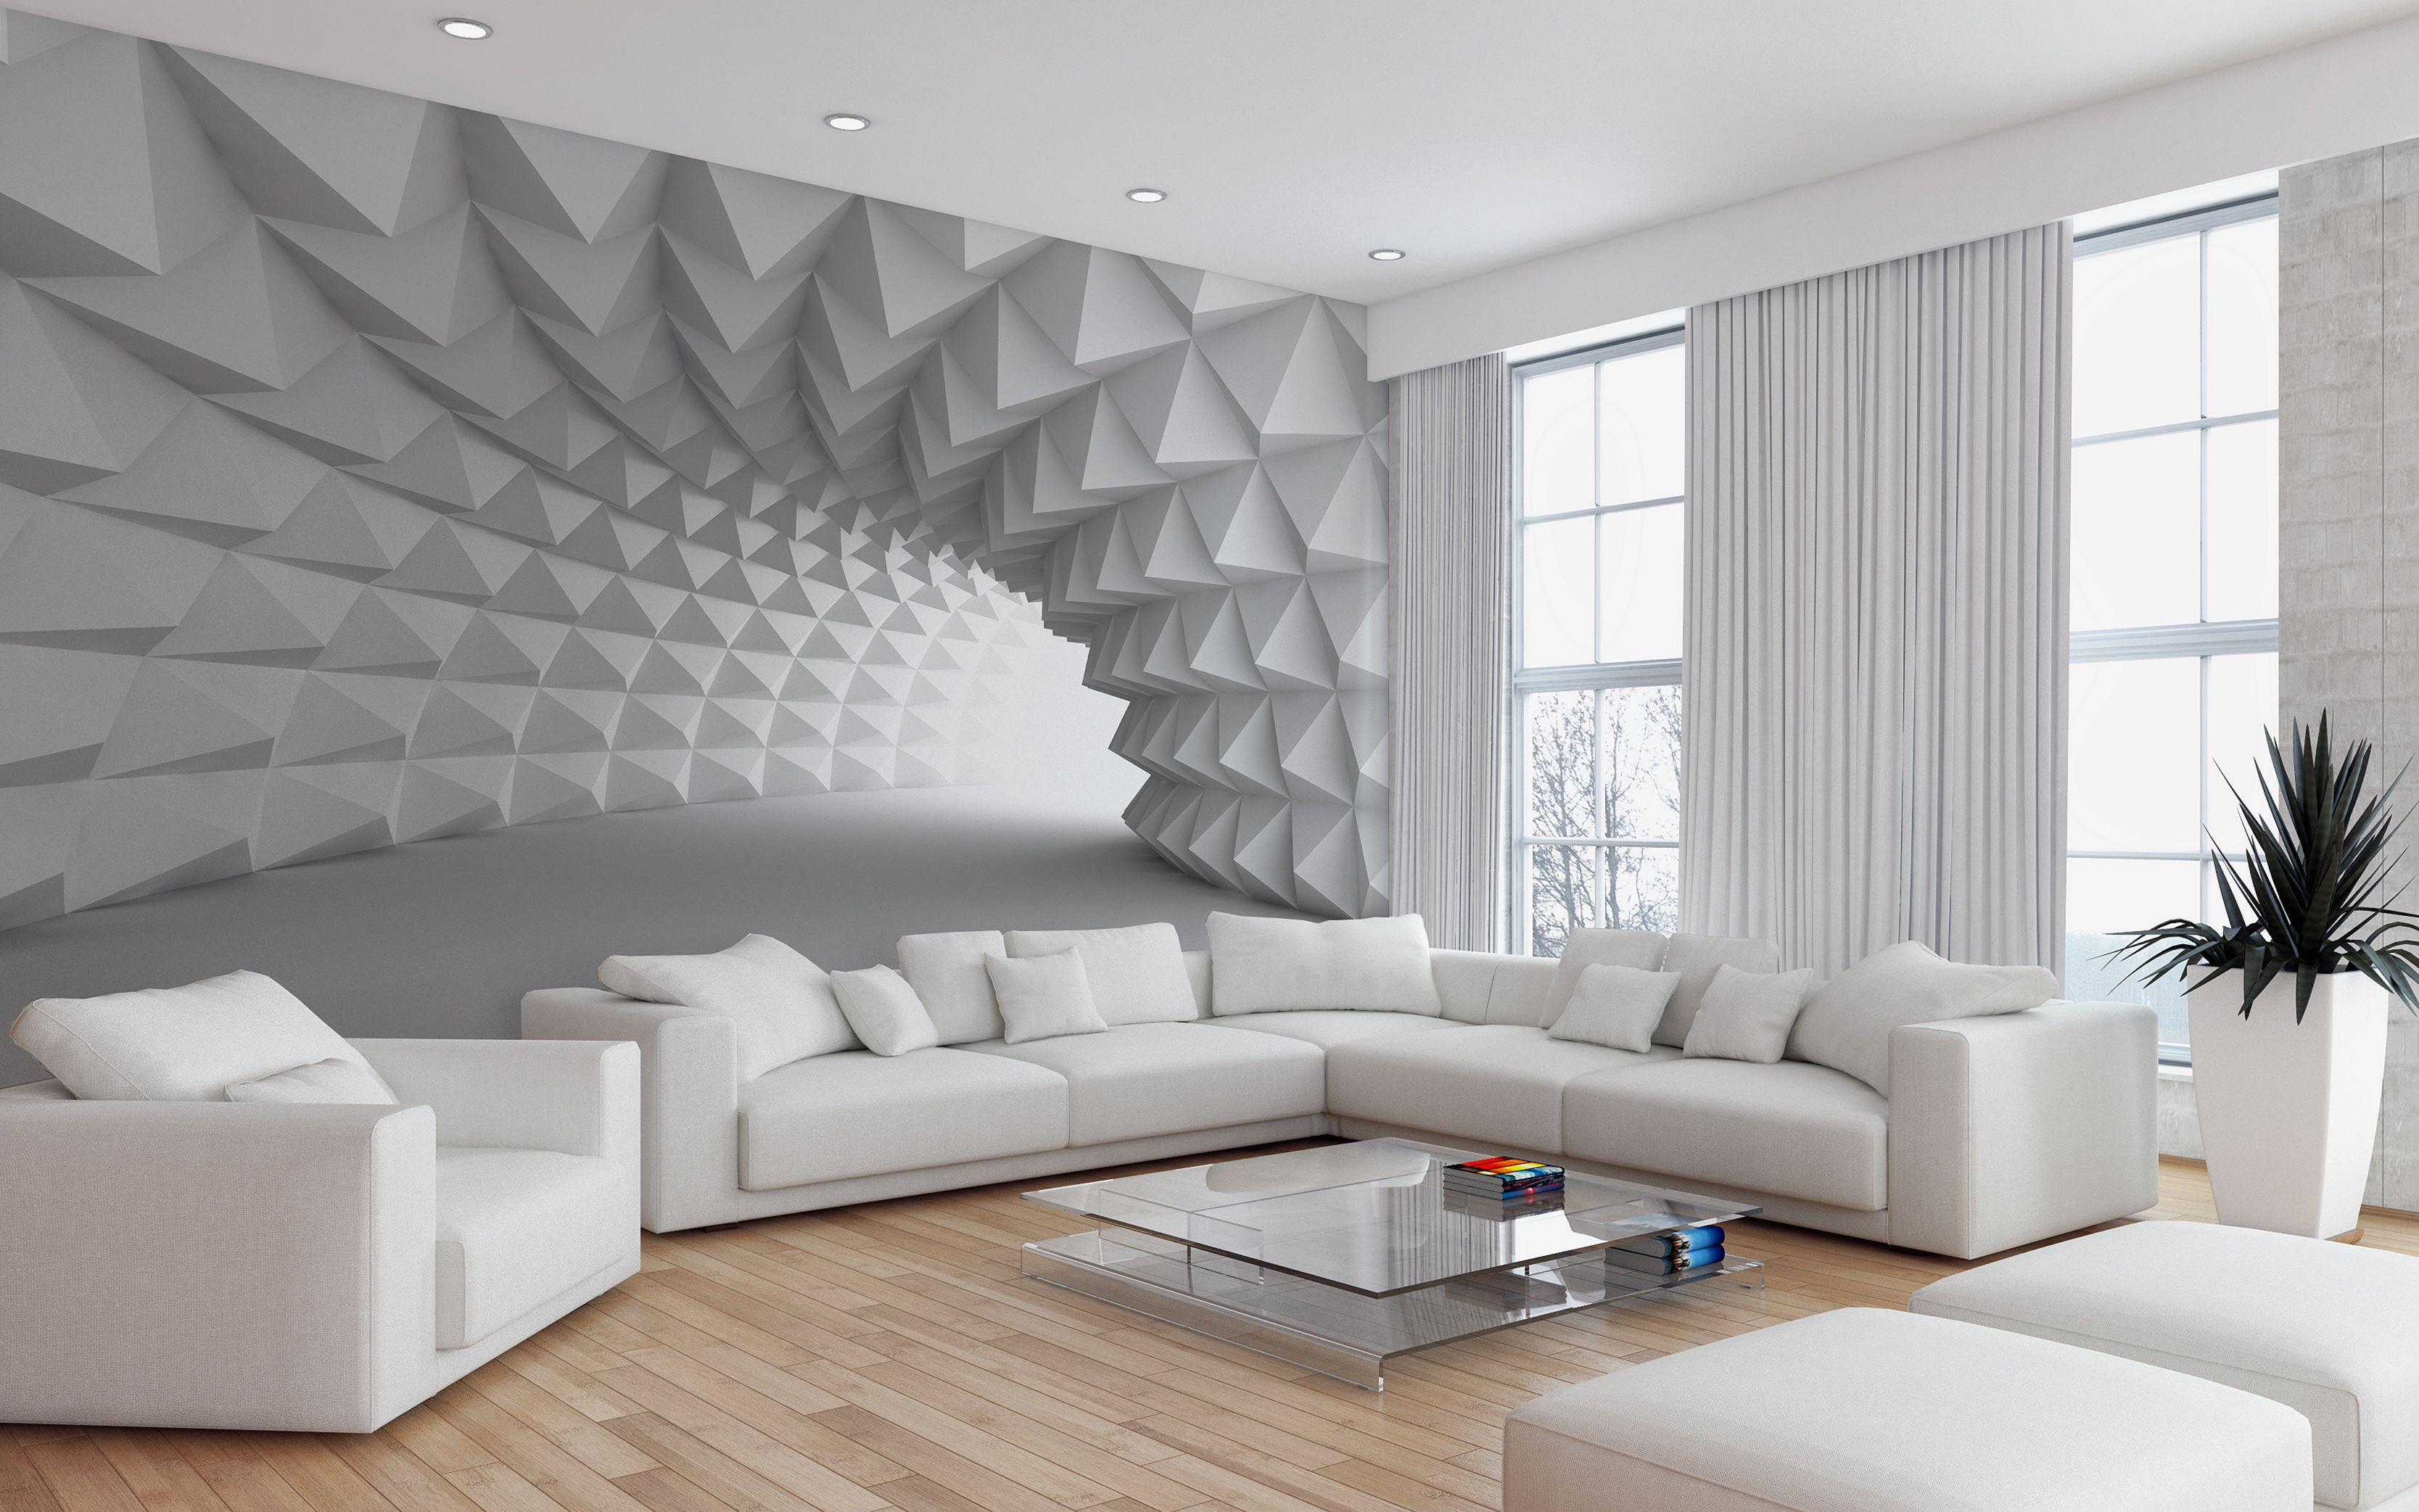 12 Gorgeous Living Room Design With 3d Wall Ideas To Inspire You Dexorate Wall Decor Living Room Rustic Wallpaper Living Room Living Room Modern